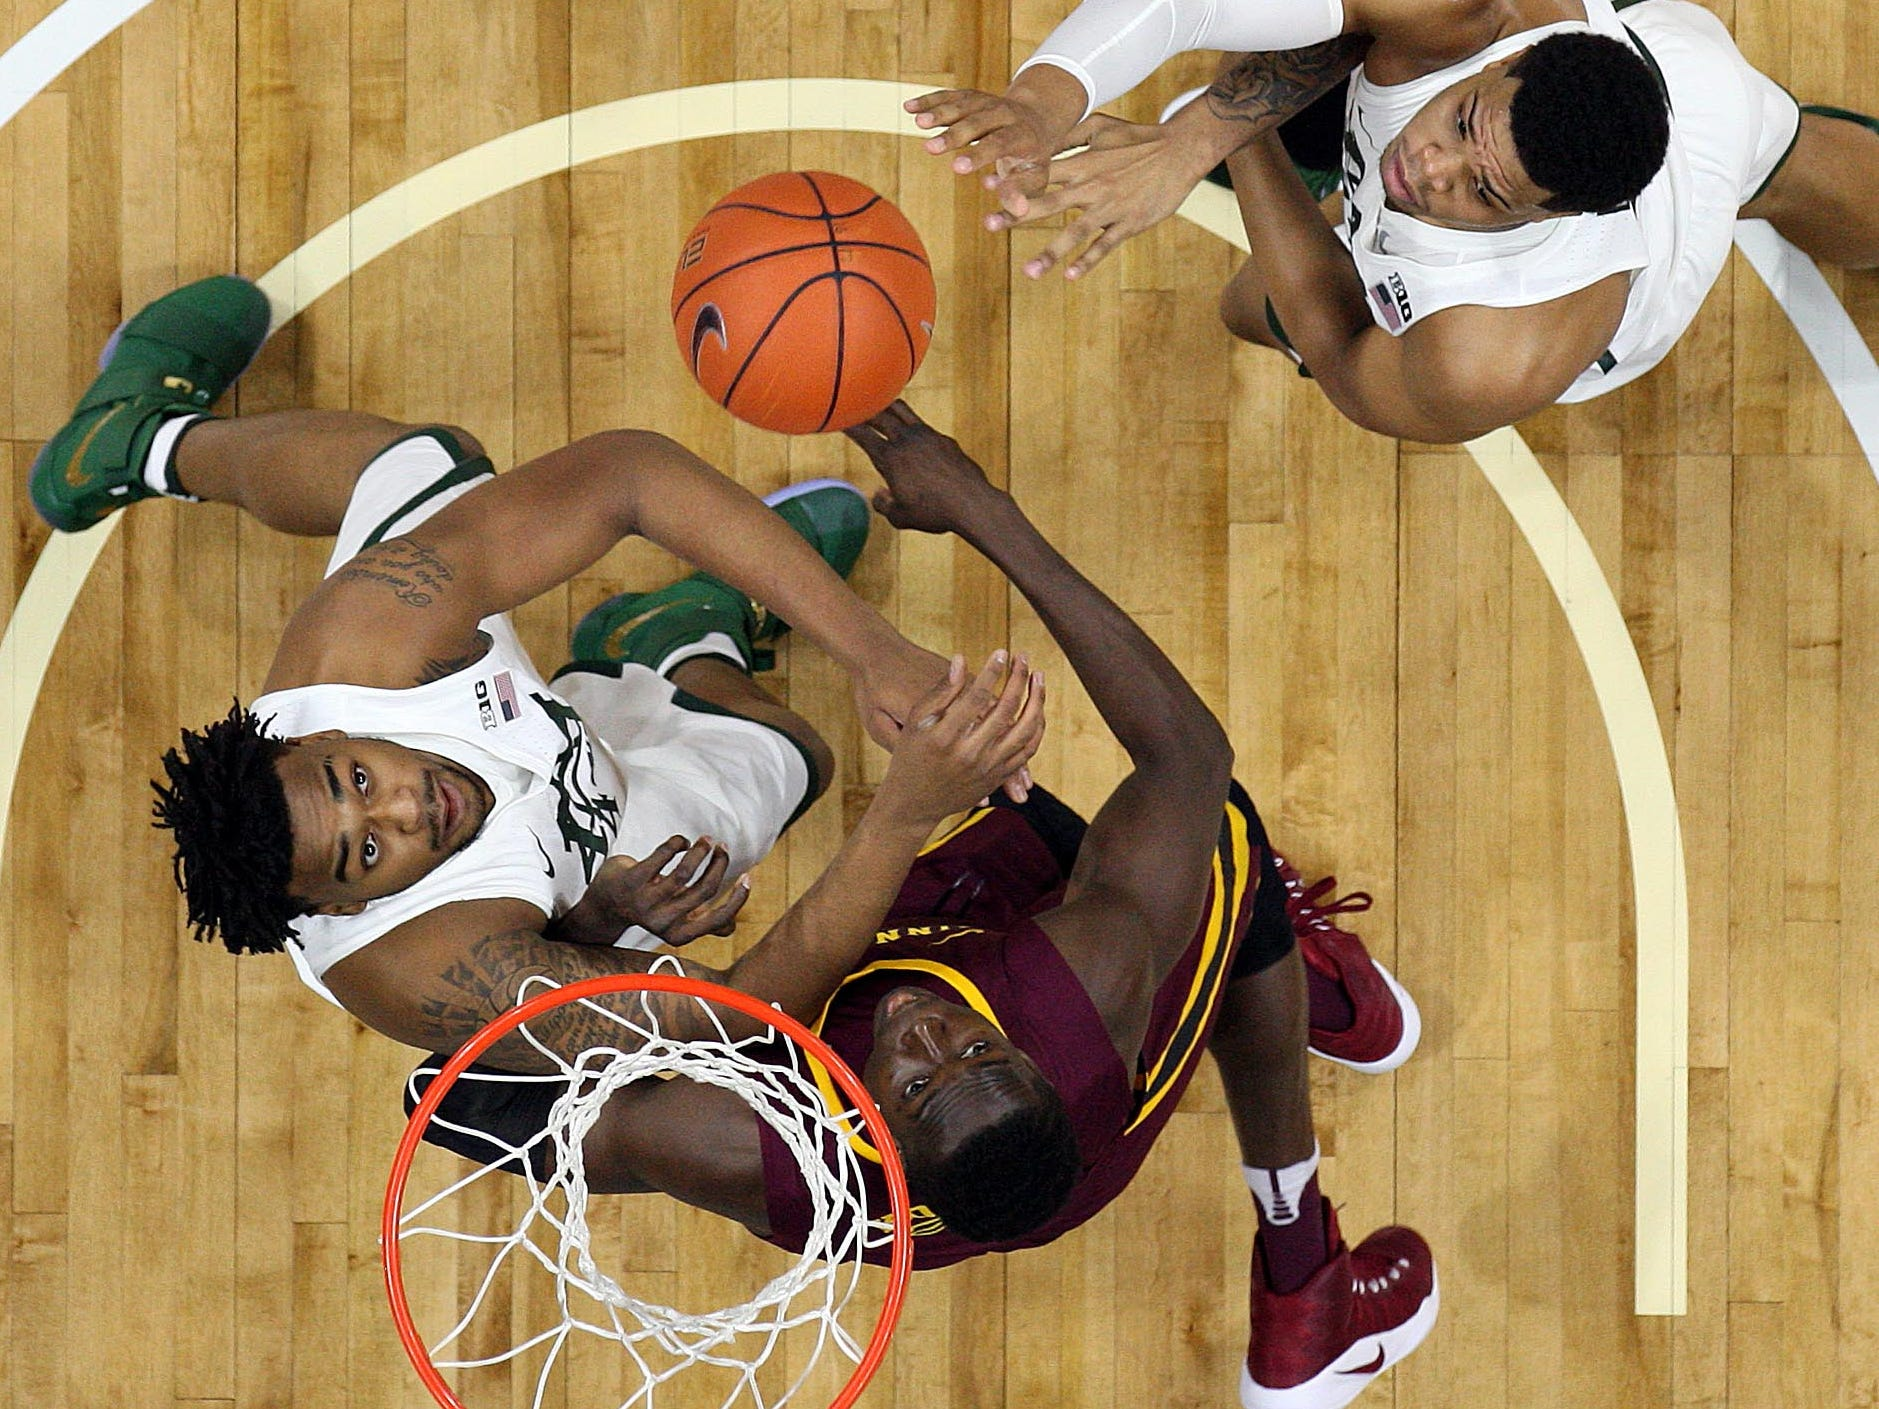 Mike Carter / USA TODAY Sports Michigan State?s Nick Ward, left, and Alvin Ellis, right, battle for a rebound against Minnesota on Jan. 11 in East Lansing. The Spartans won that game, 65-47, sweeping the regular-season series for two of MSU?s signature wins thus far. Jan 11, 2017; East Lansing, MI, USA;  Michigan State Spartans forward Nick Ward (44) and Minnesota Golden Gophers center Bakary Konate (21) and Michigan State Spartans guard Alvin Ellis III (3) fight for a loose ball during the first half of a game at Jack Breslin Student Events Center. Mandatory Credit: Mike Carter-USA TODAY Sports